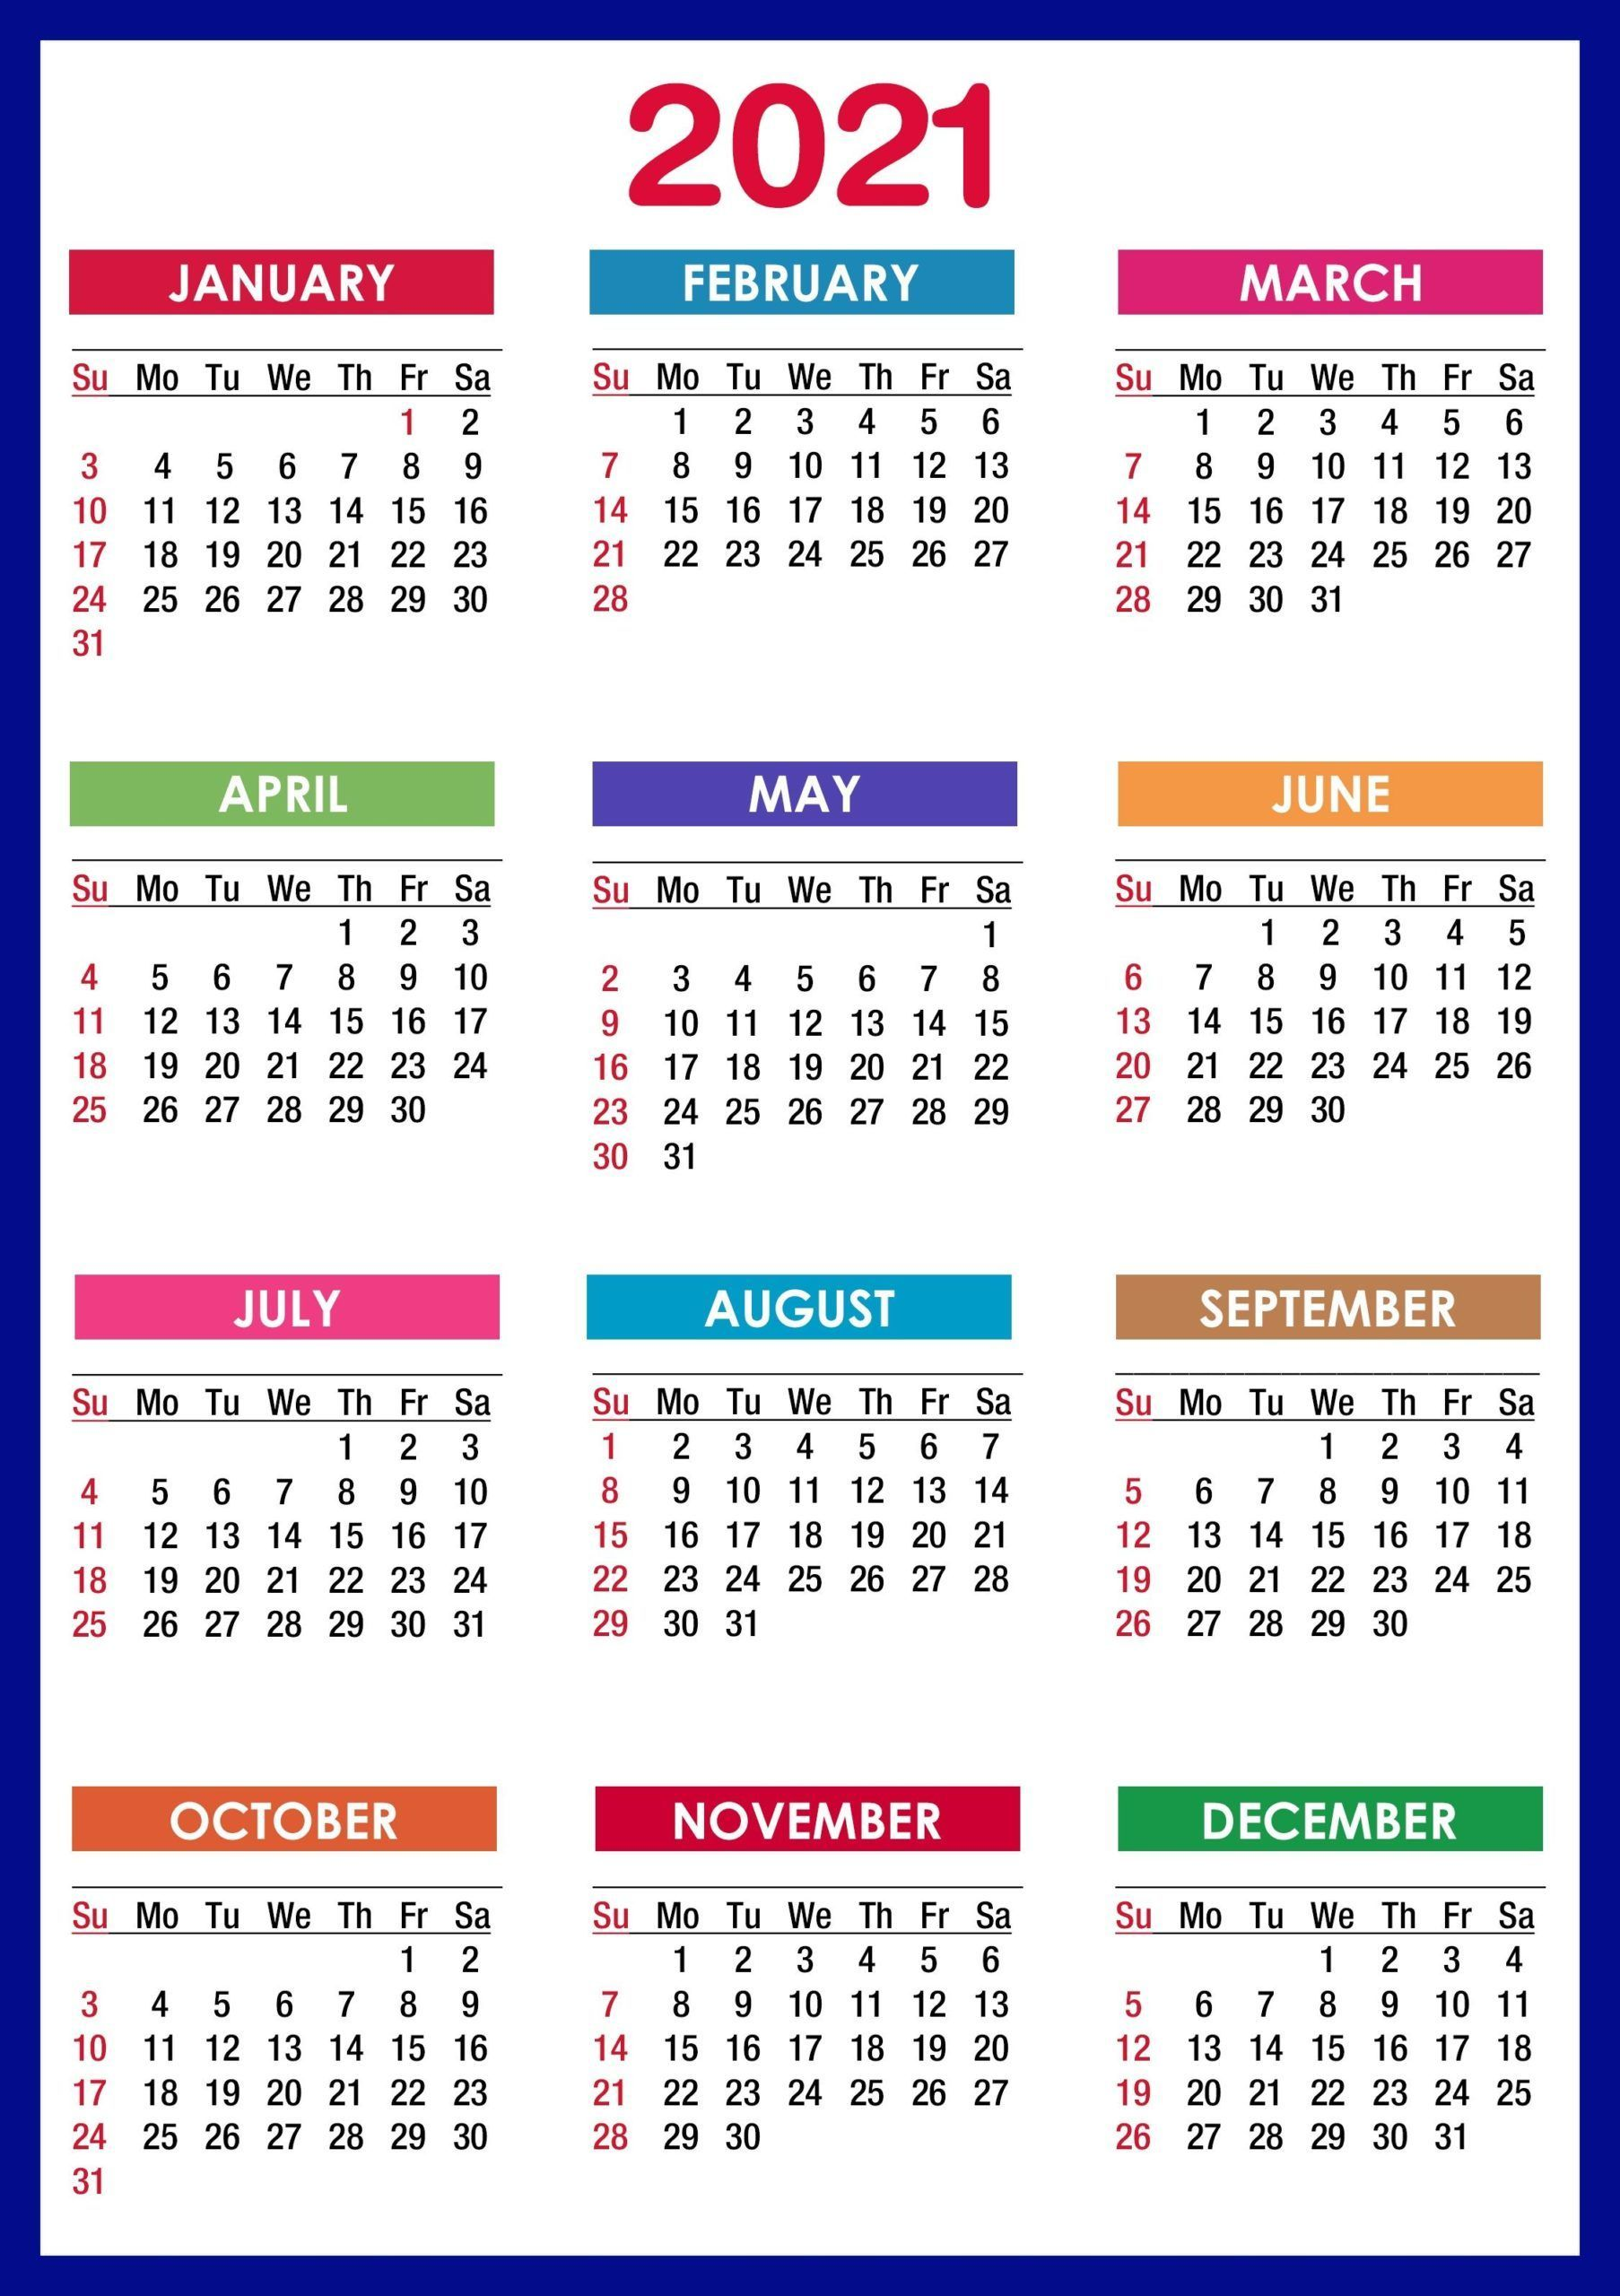 Calendar Of 2021 Pin by Vittoria Pauletti on CALENDAR 2021 | Printable yearly